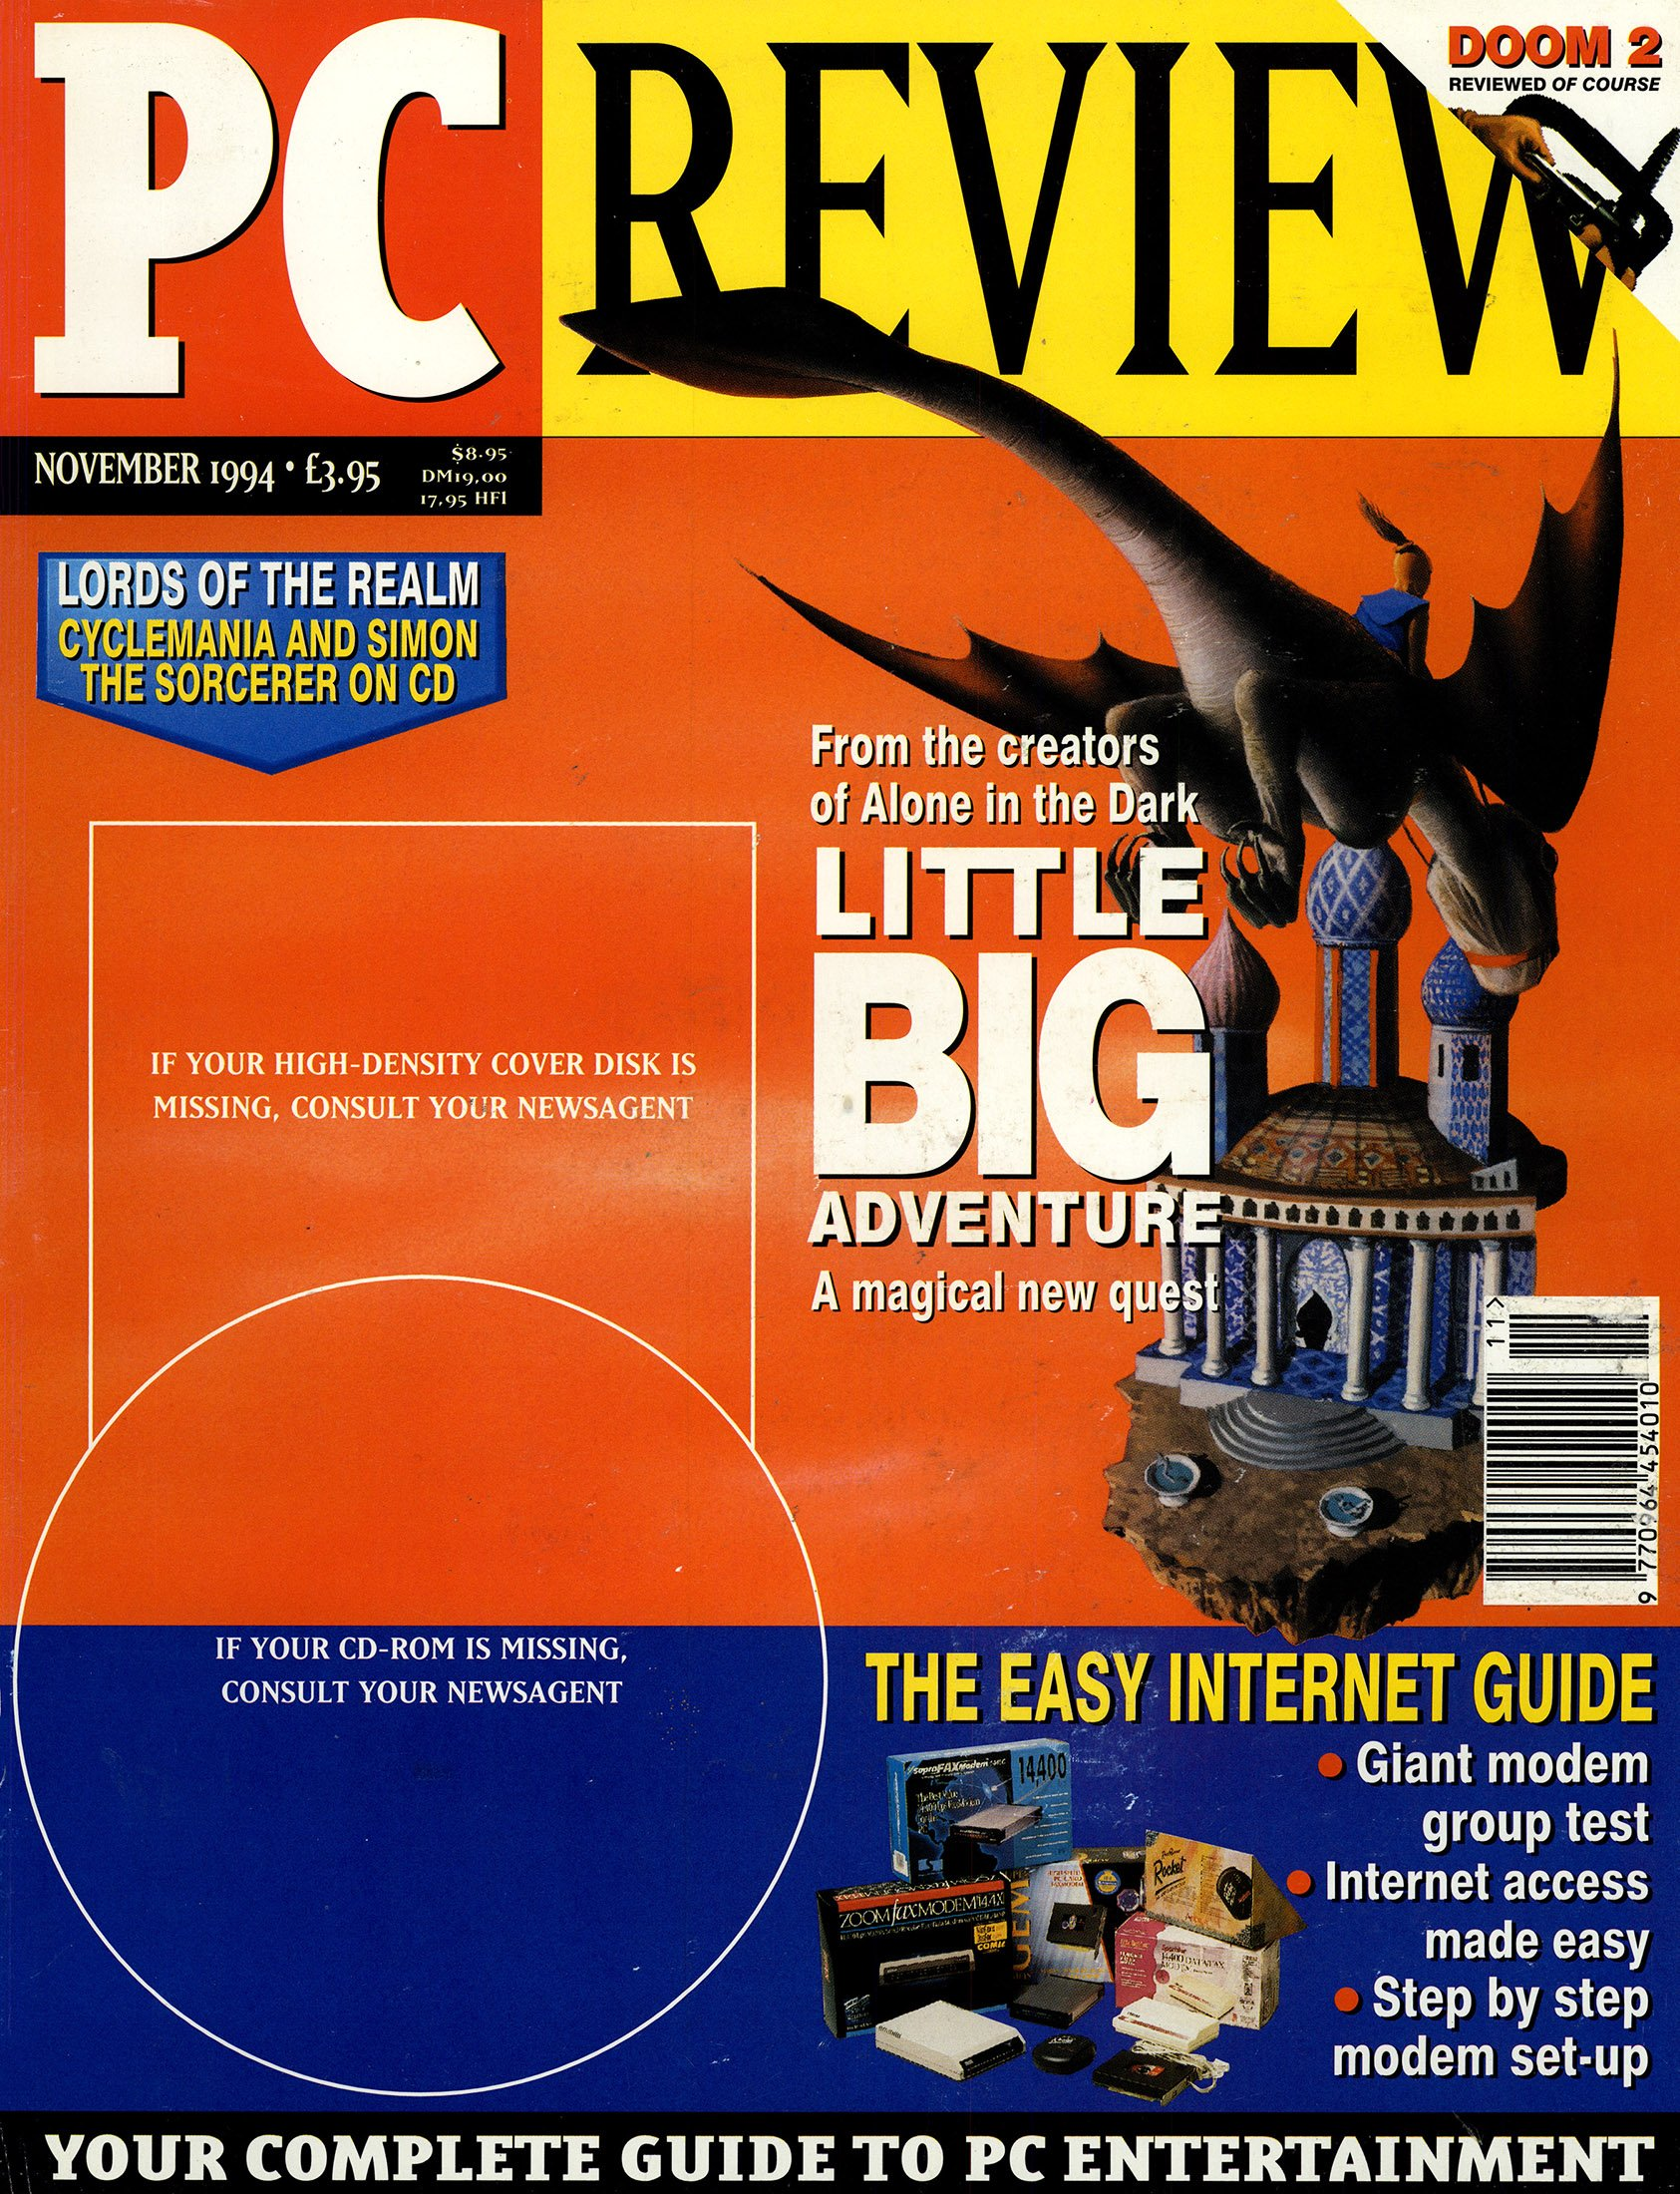 PC Review Issue 37 (November 1994)